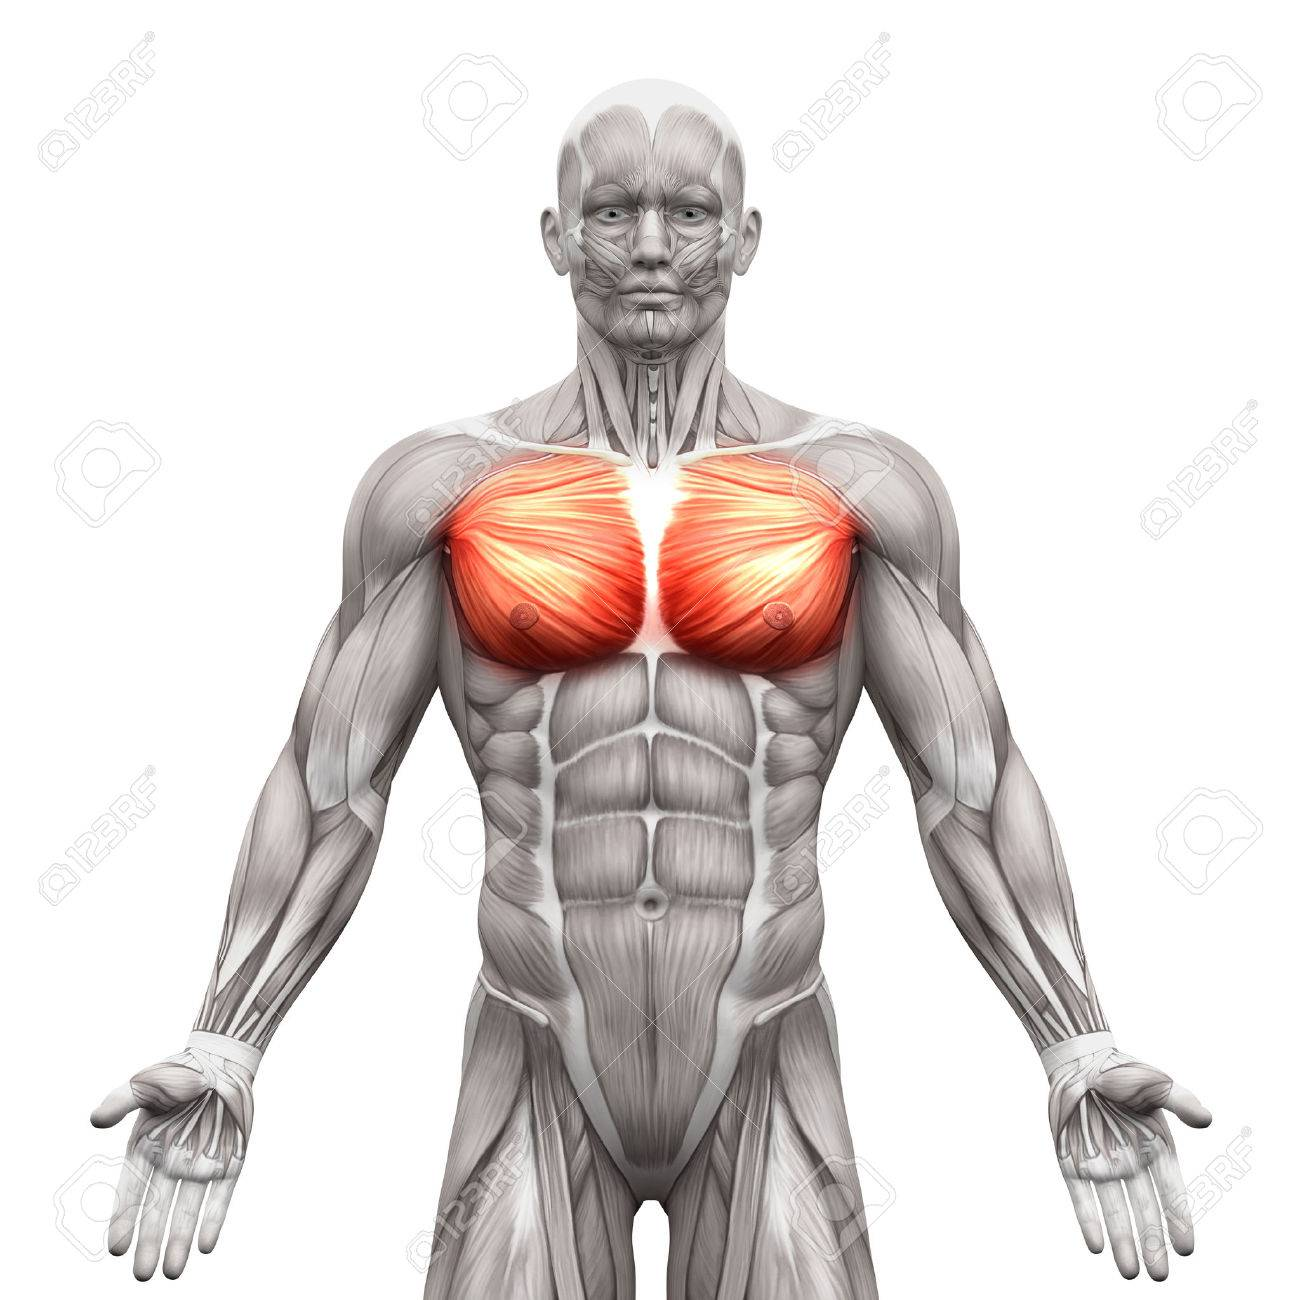 Chest Muscles - Pectoralis Major And Minor - Anatomy Muscles.. Stock ...